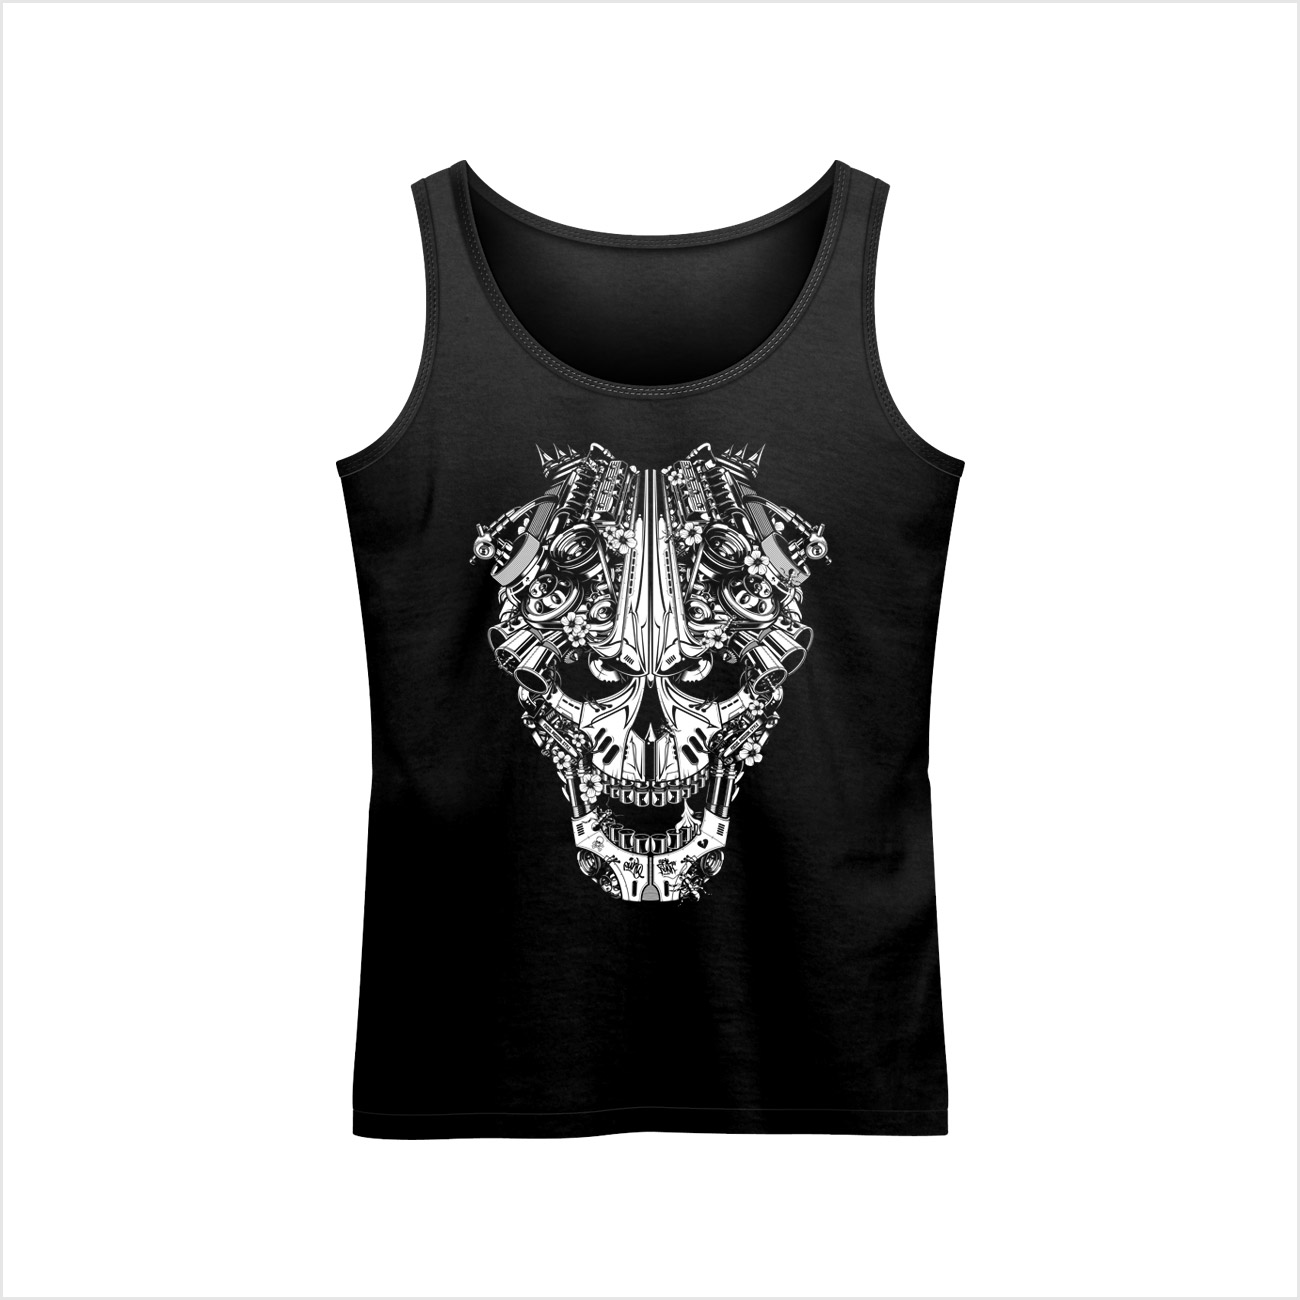 fat-punk-studio-engine-skull-vest-top-black-01